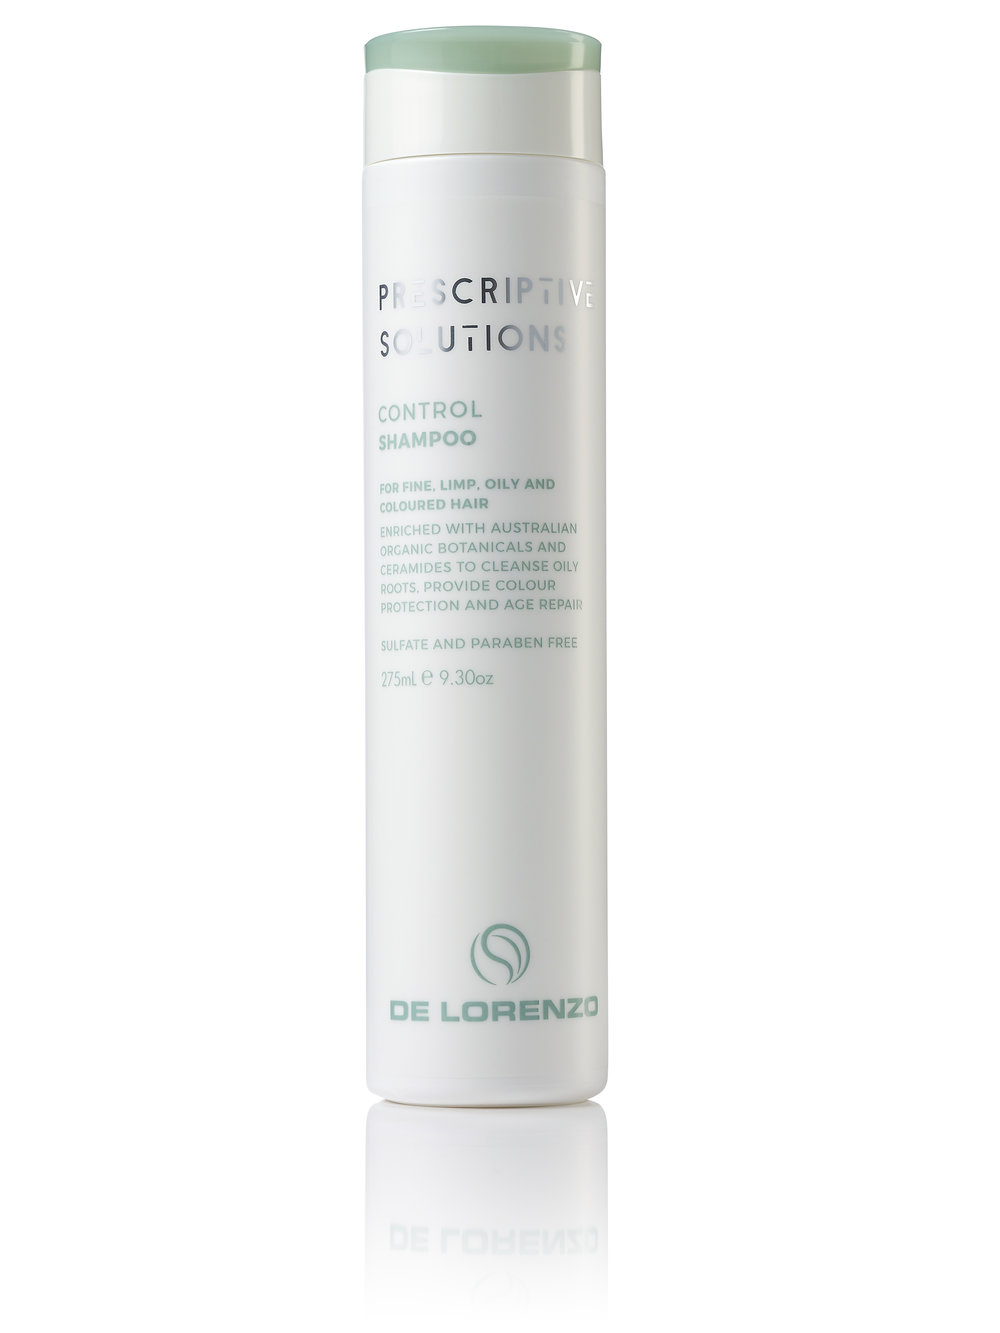 PS_275ml_Control_Shampoo.jpg